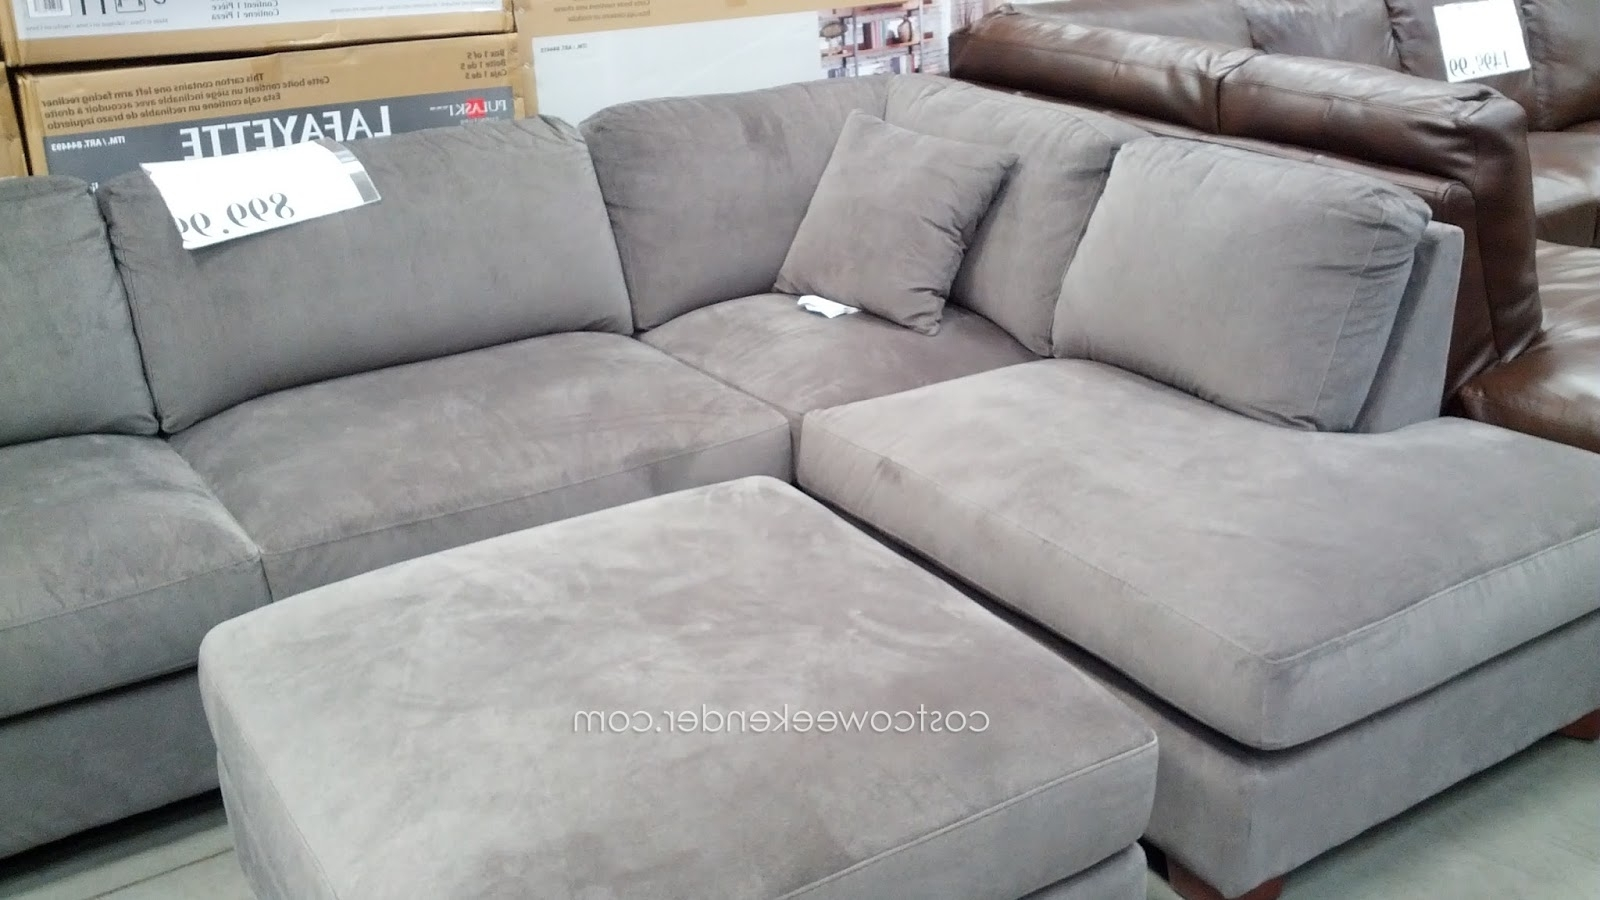 Favorite Sectional Sofa Design: Lovely Sectional Sofas Costco Leather Throughout Sectional Sofas At Costco (View 7 of 20)